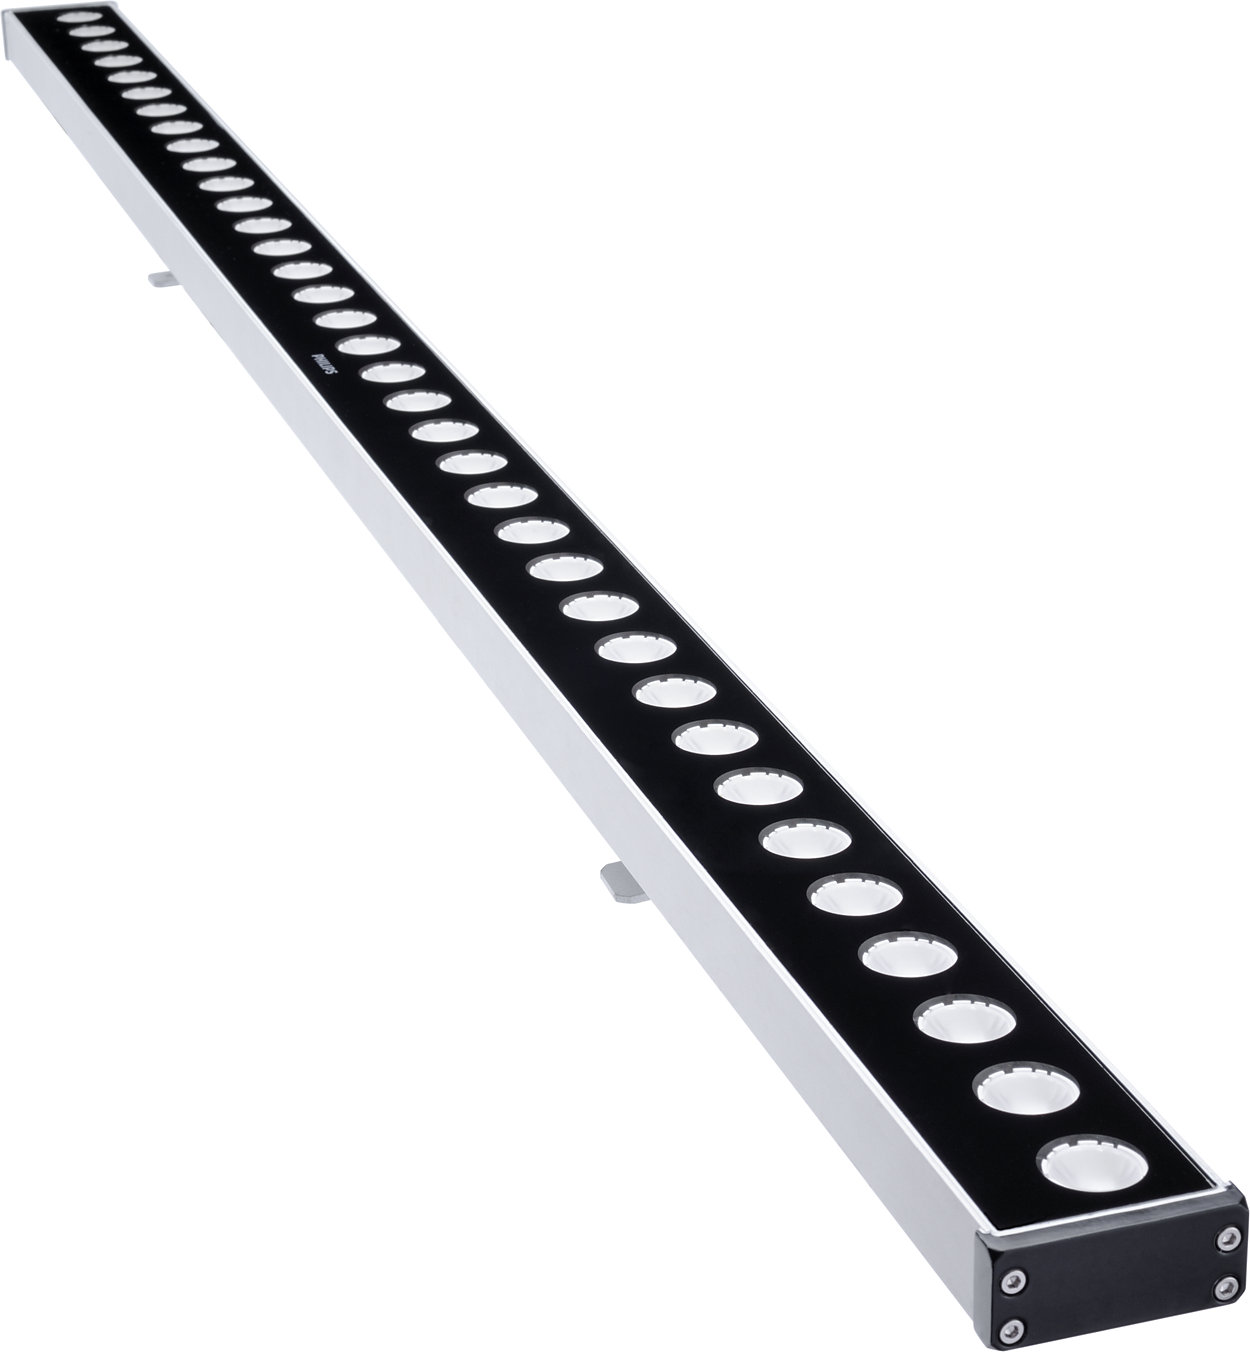 Dynamic RGB wall washer LED linear luminaire